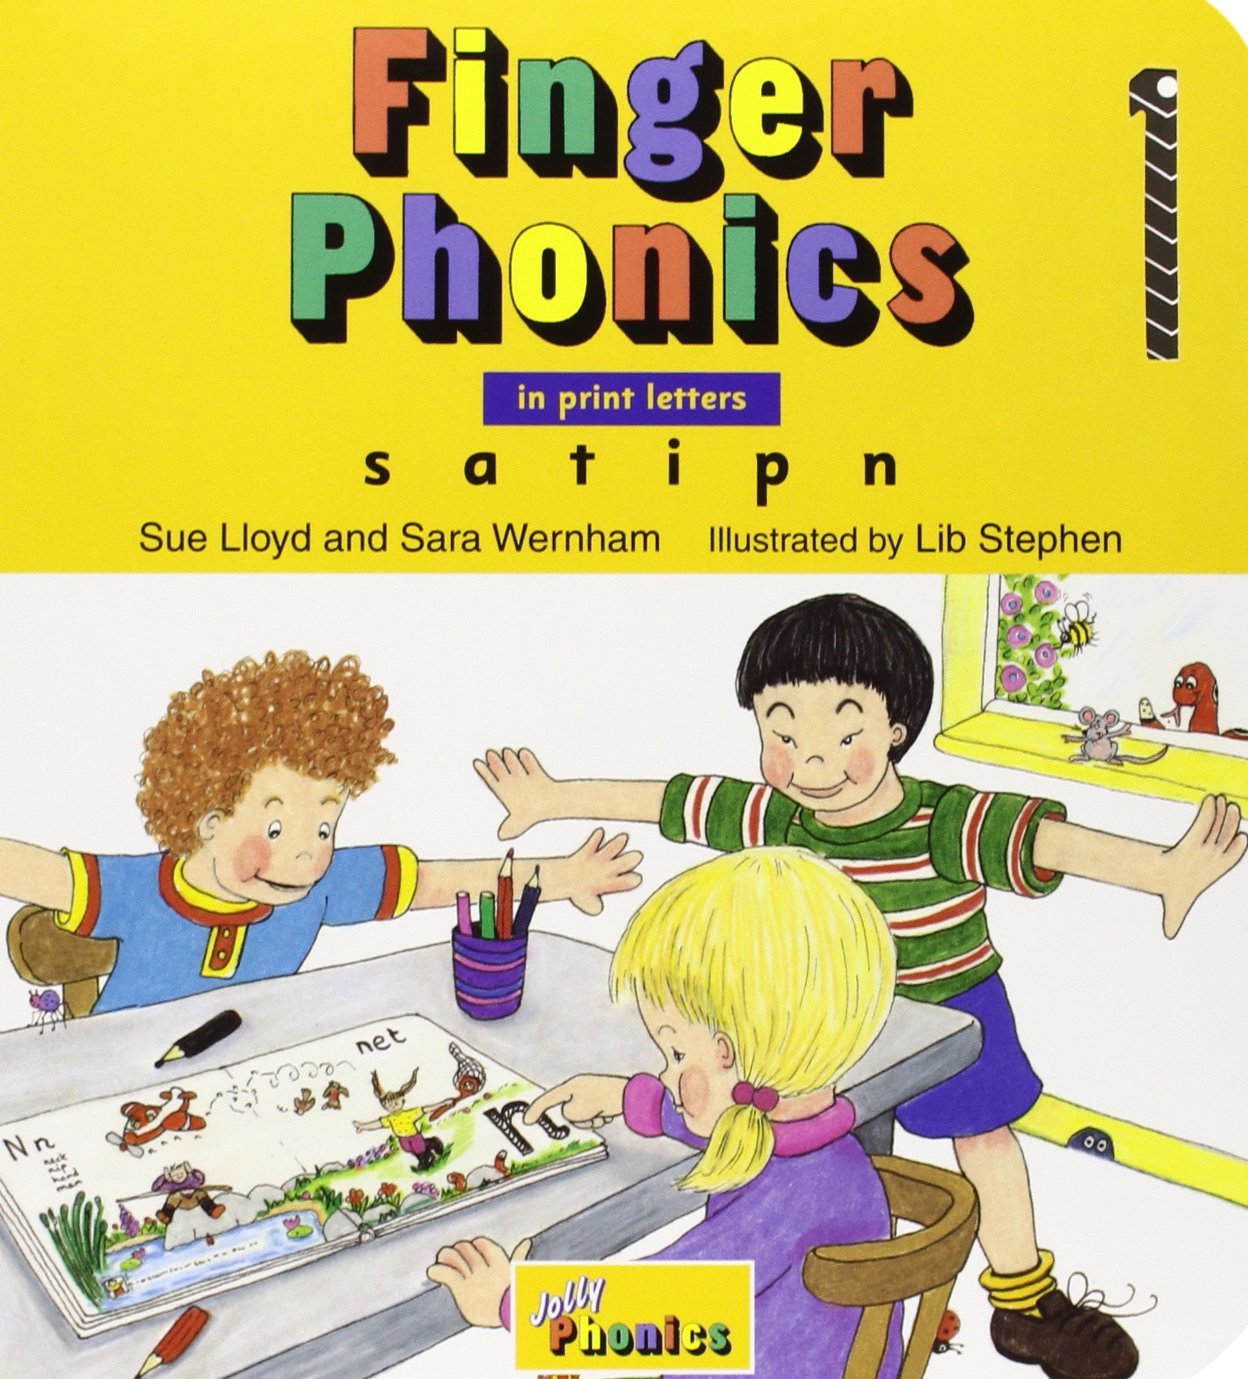 Workbooks jolly phonics workbook 1 free download : Finger Phonics, Books 1-7: In Print Letters: Sue Lloyd ...